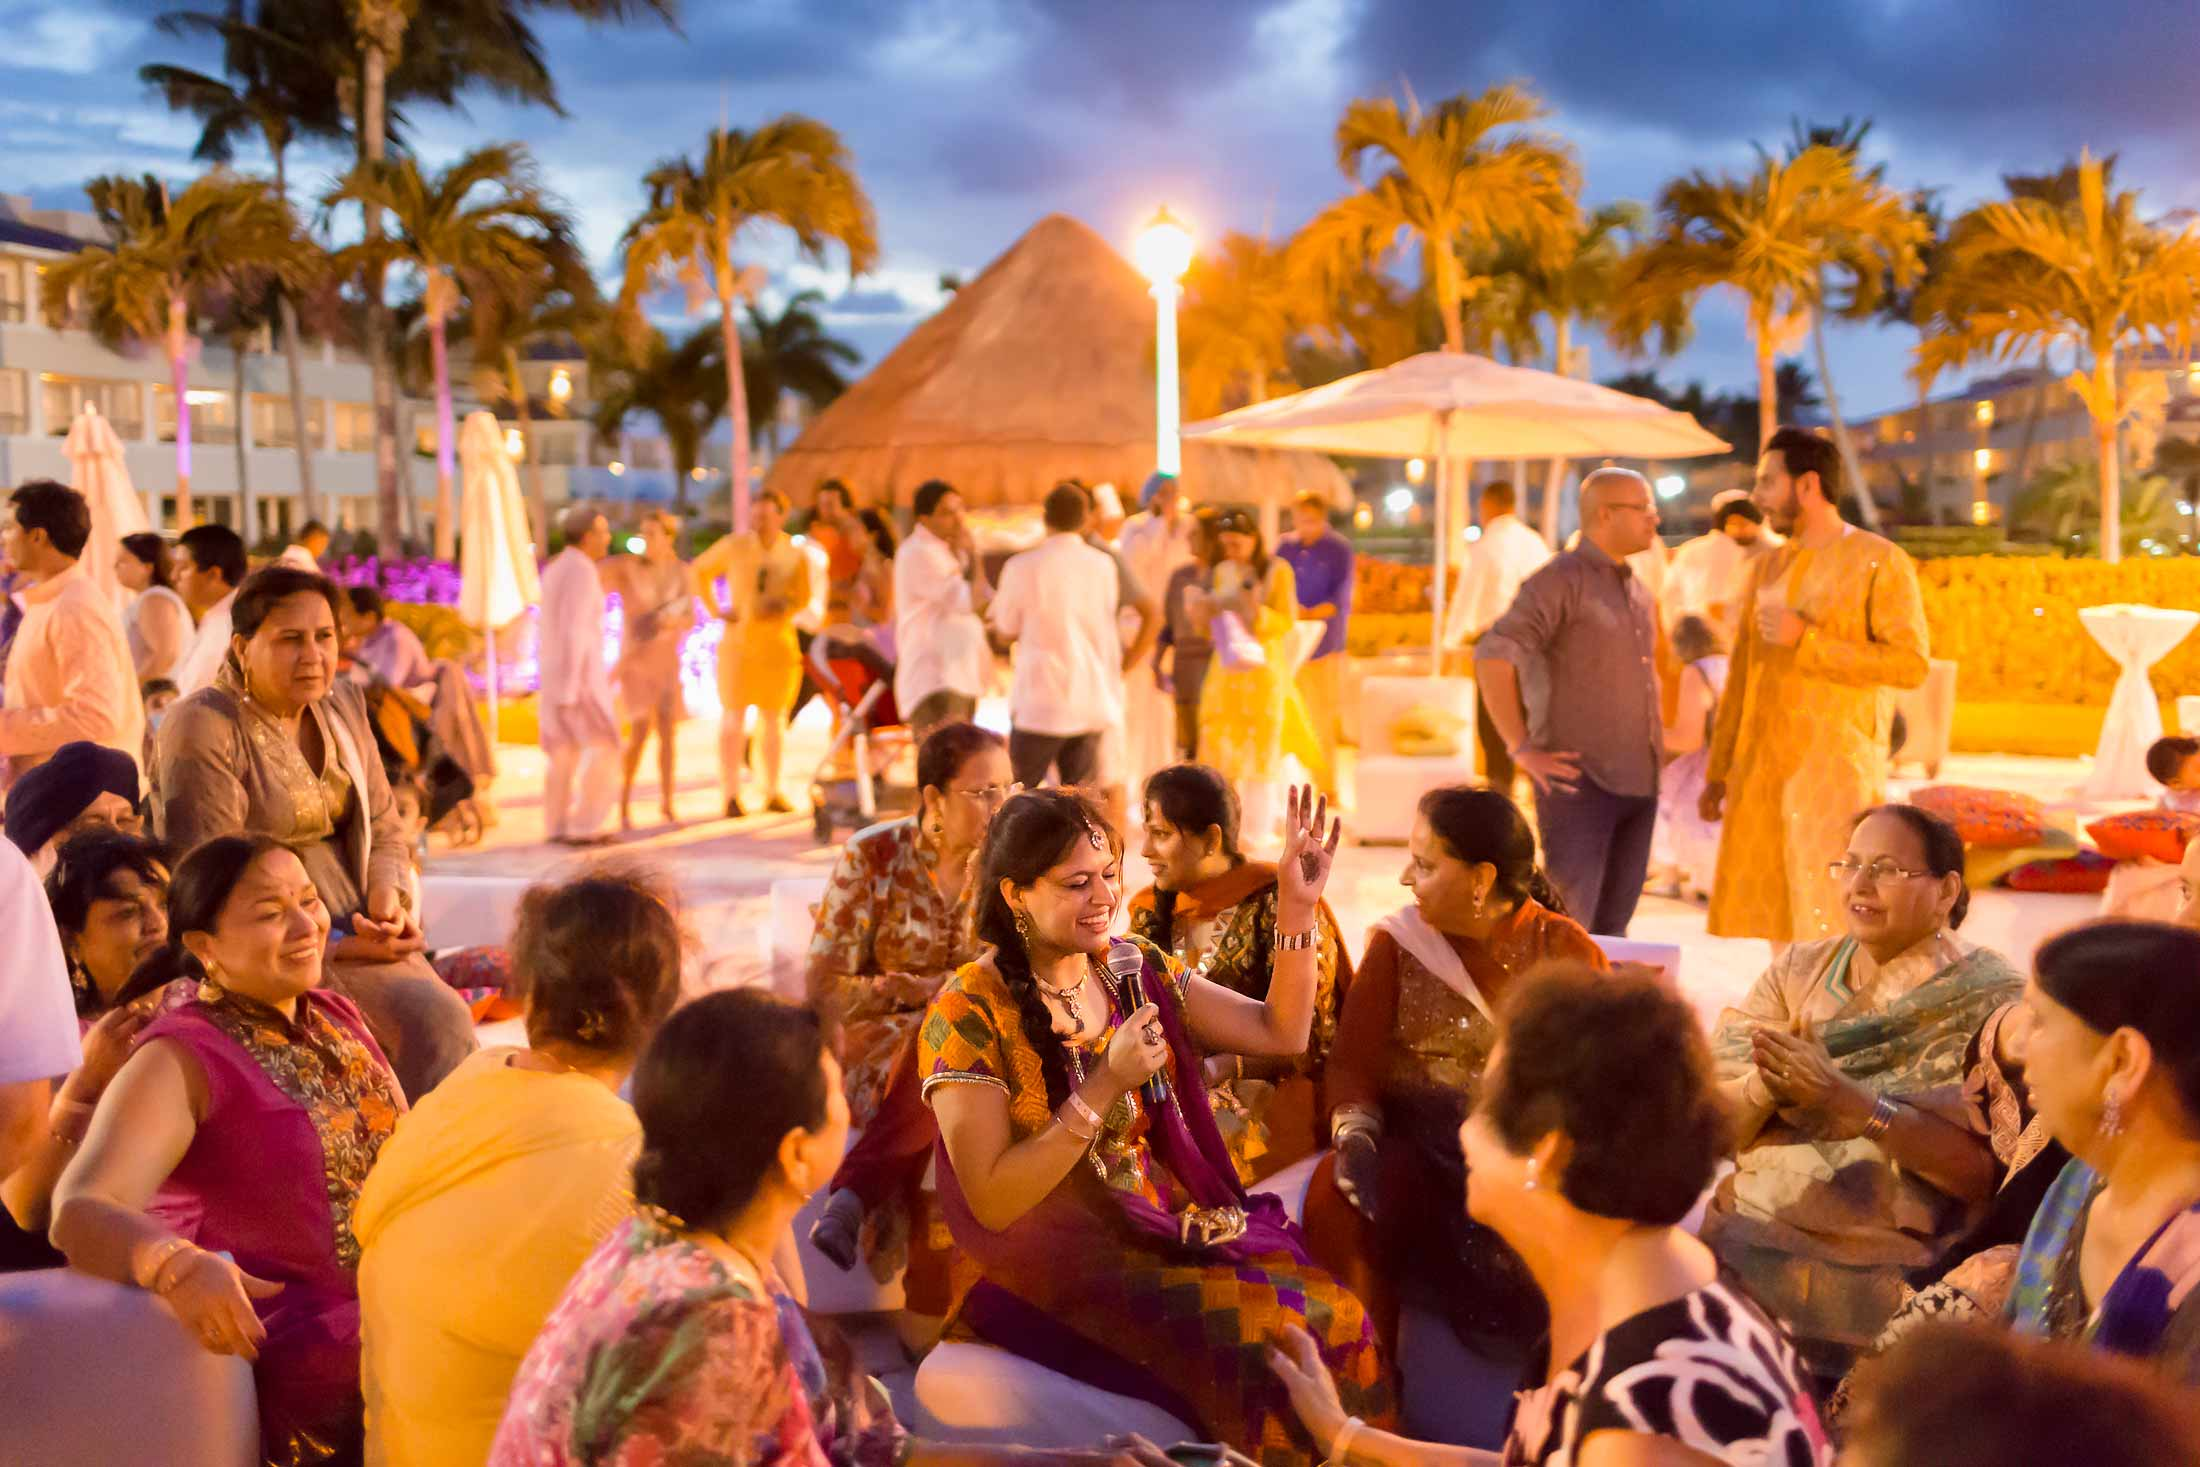 group wedding activities in mexico